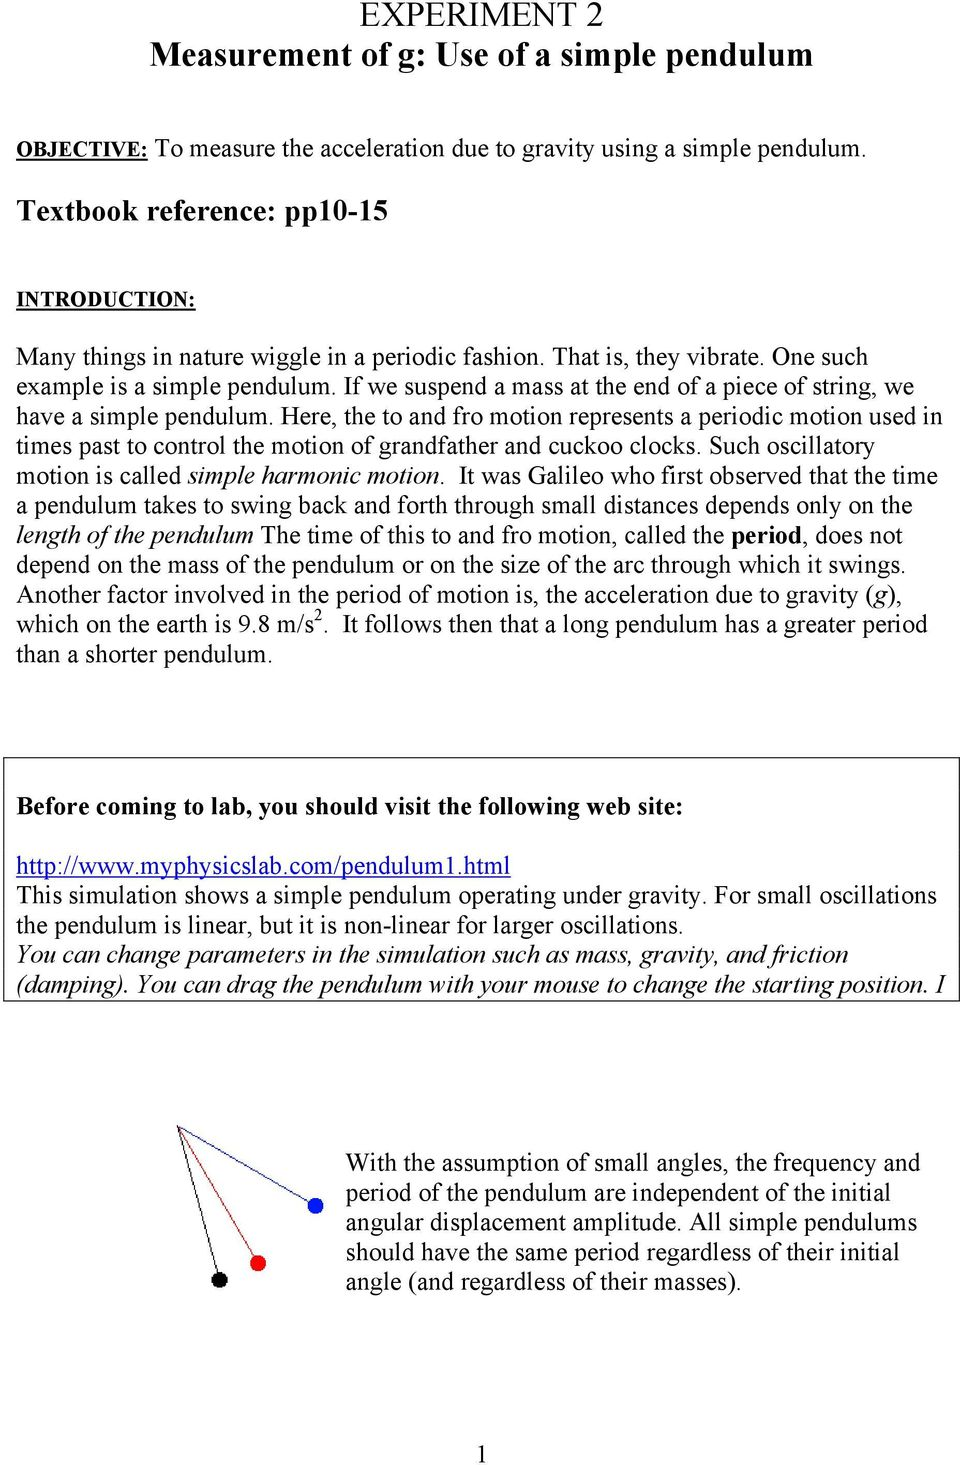 EXPERIMENT 2 Measurement of g: Use of a simple pendulum - PDF